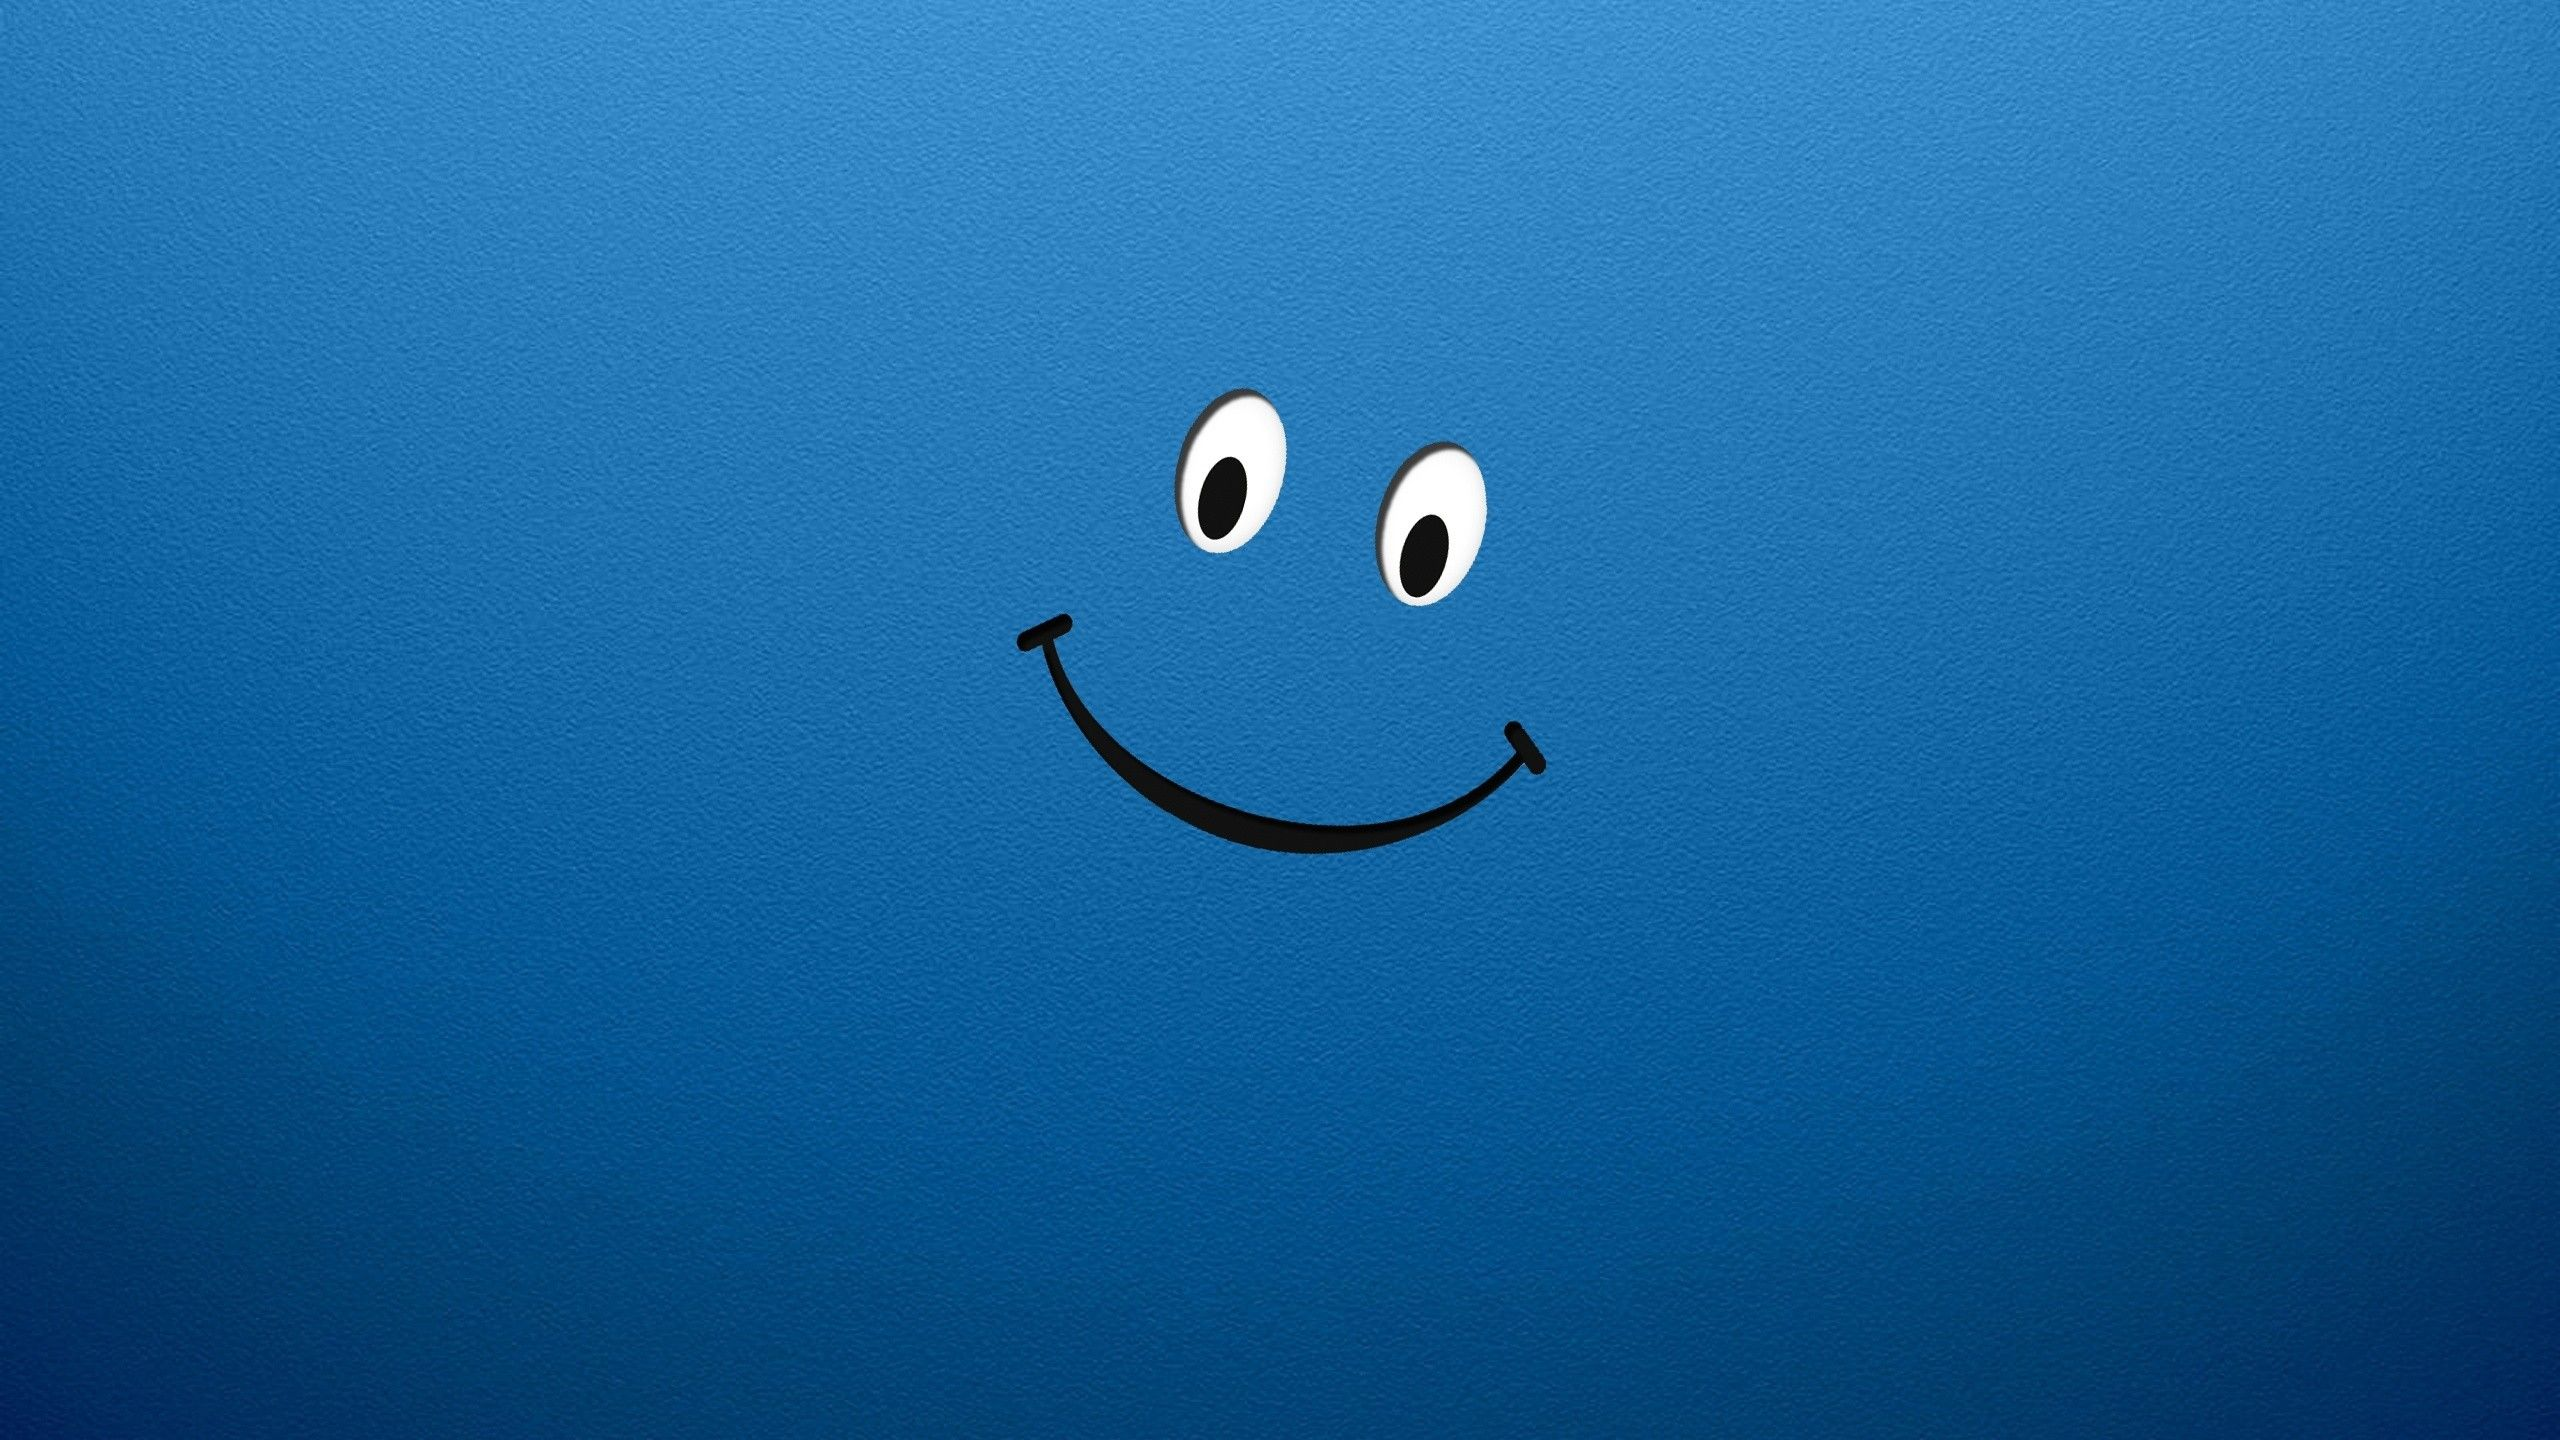 Smiley Face Live Wallpaper  Android Apps on Google Play 2560x1440